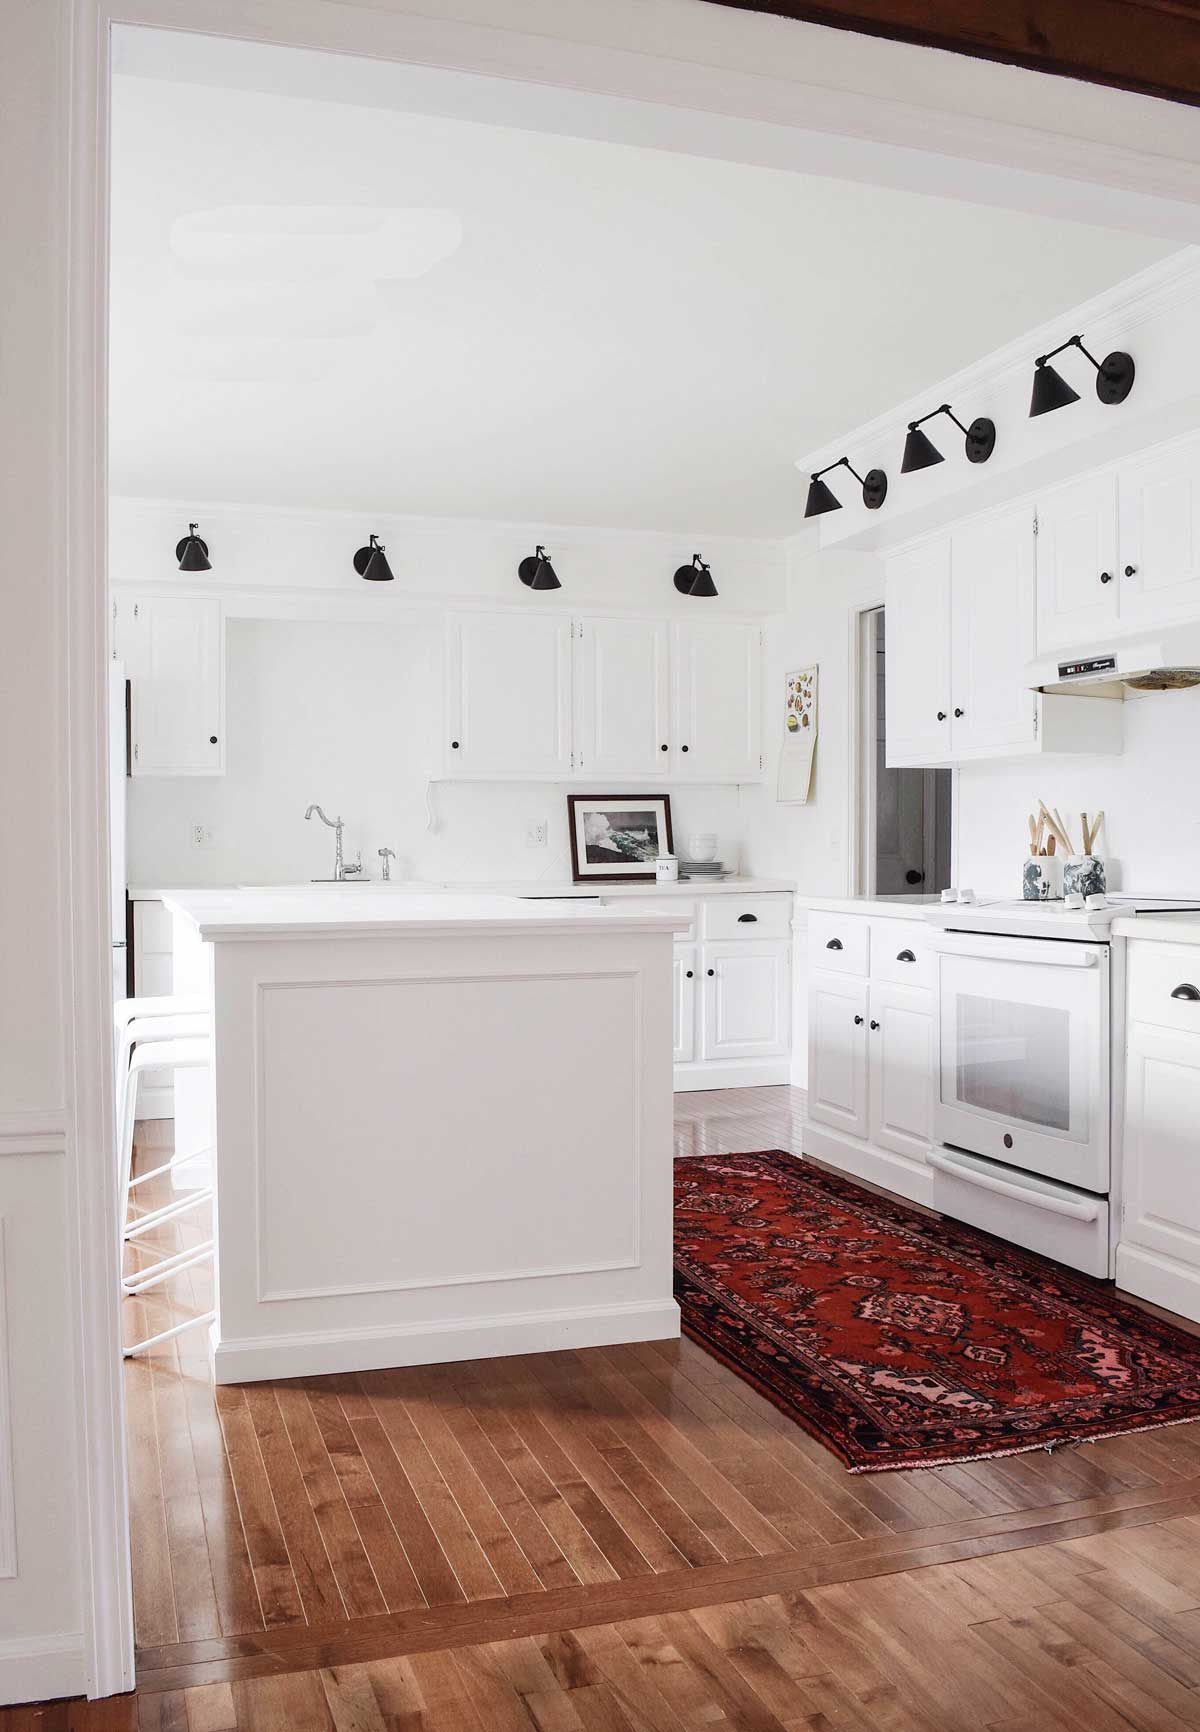 hight resolution of  a former eat in kitchen combo to a regular rounded out full kitchen 2 the big and adequate trash center and 3 the microwave is not on the counter